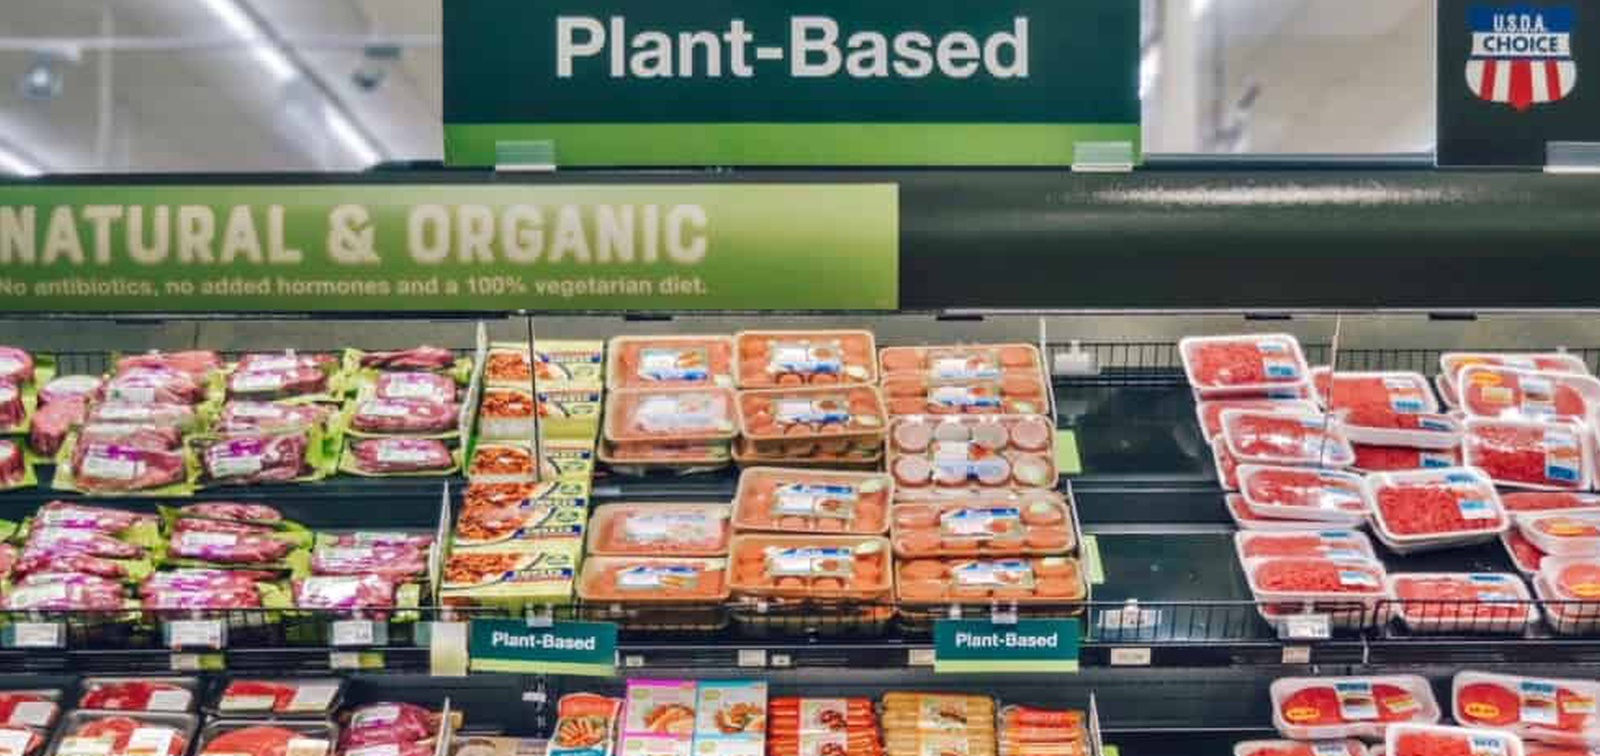 Plant-based products sell 23% better in the meat section, study finds